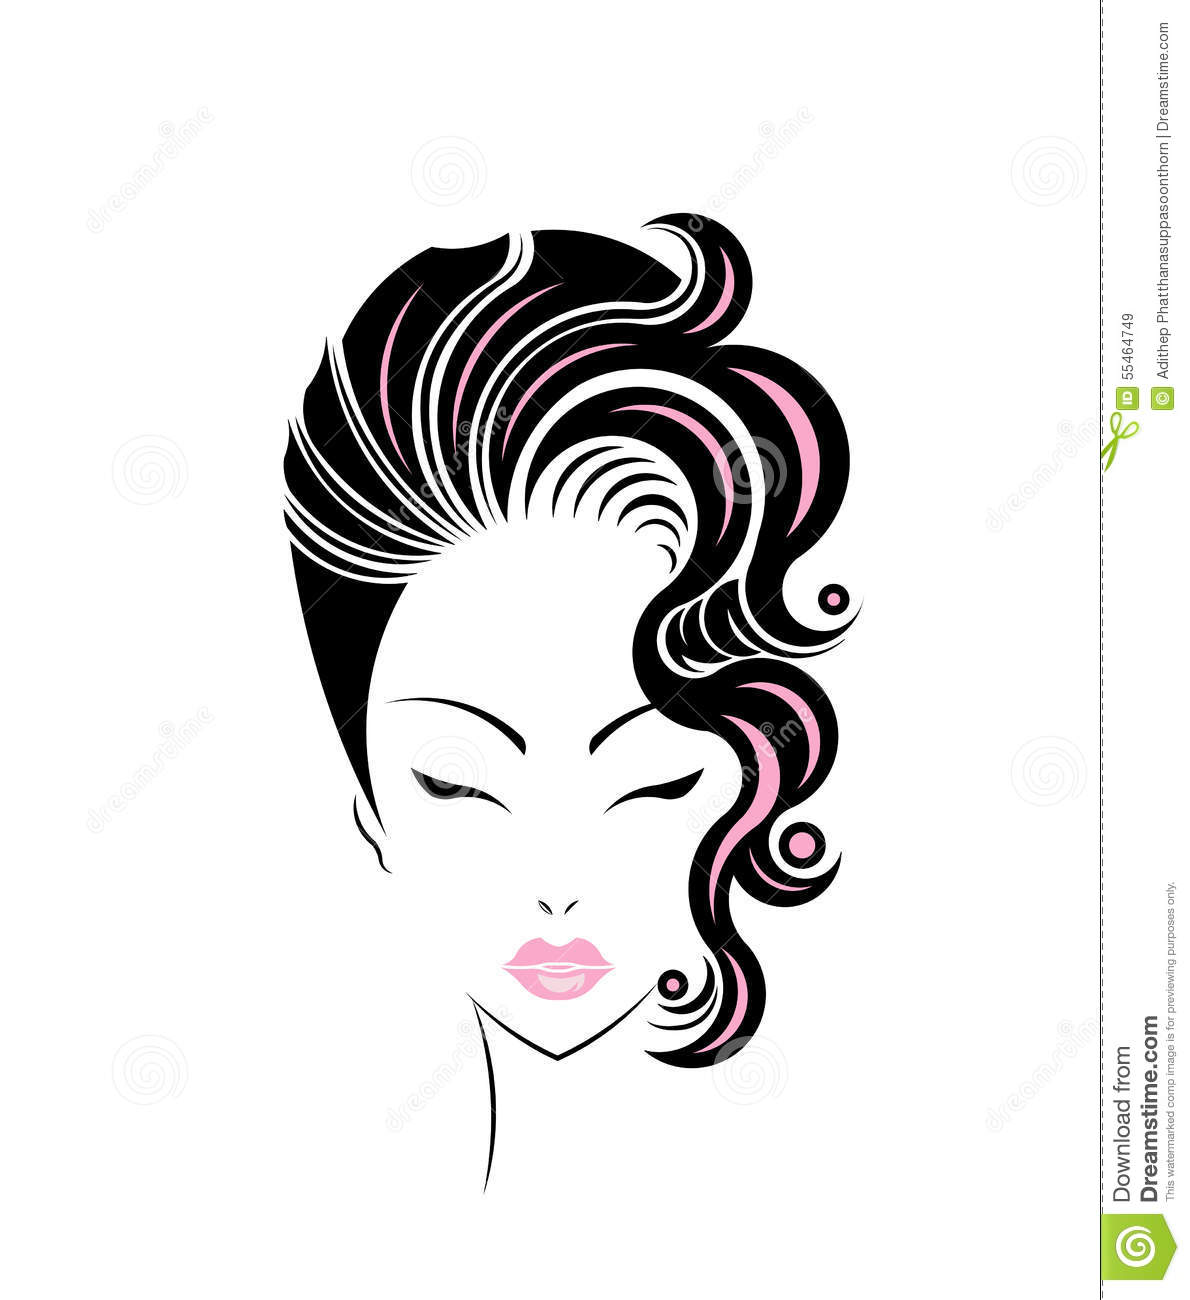 hair vector images - photo #20